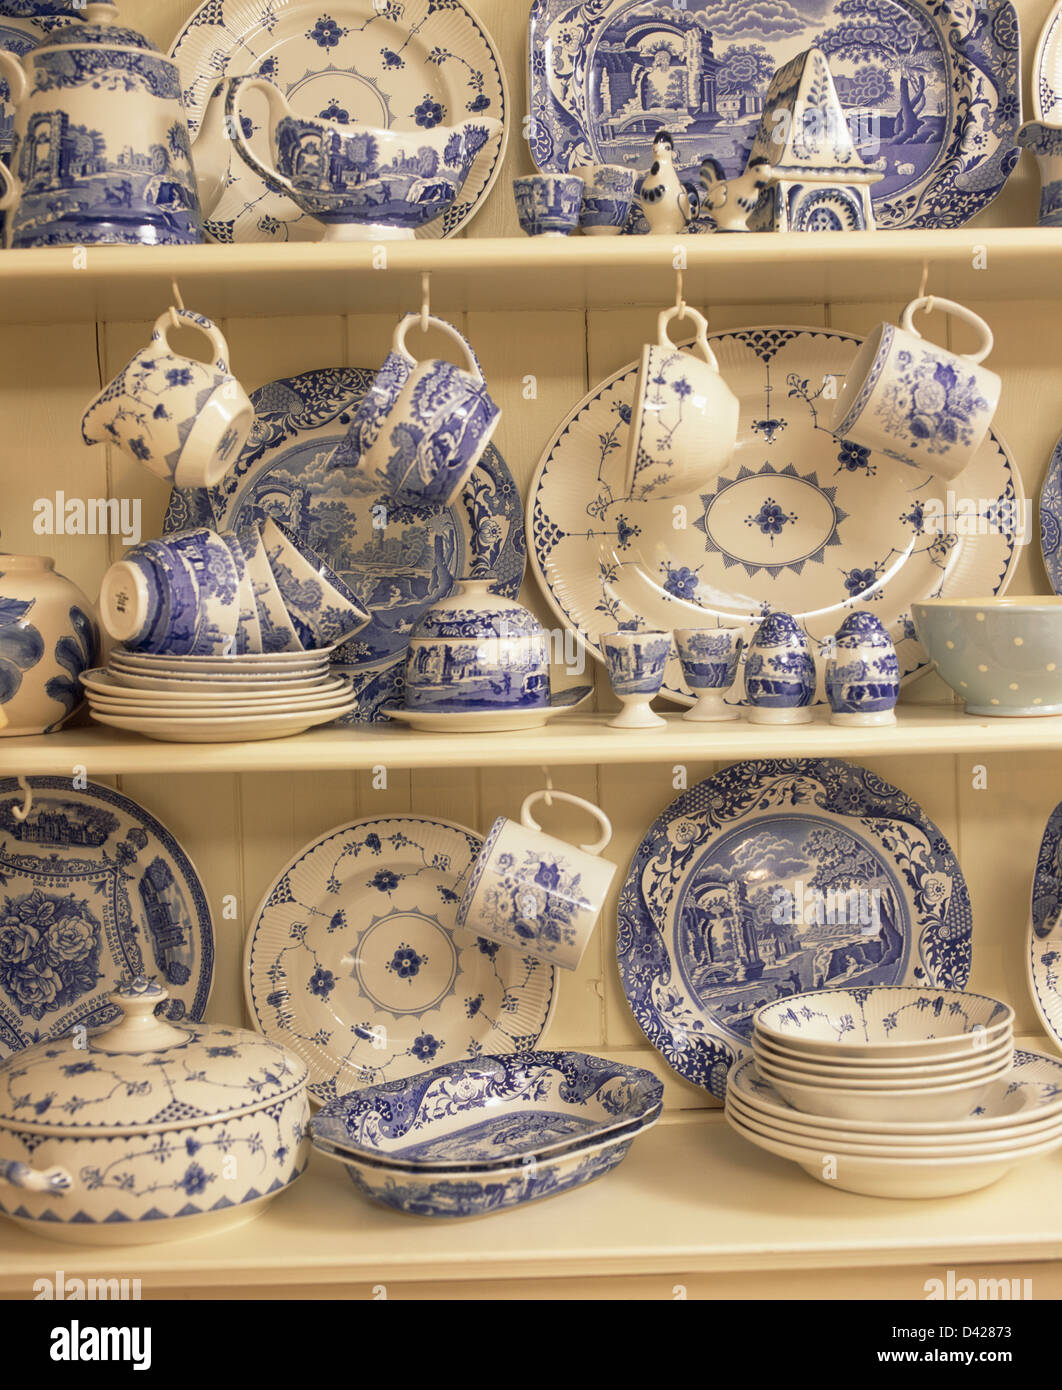 Collection of blue and white Spode u0027Italianu0027 china on cream shelves & Collection of blue and white Spode u0027Italianu0027 china on cream shelves ...